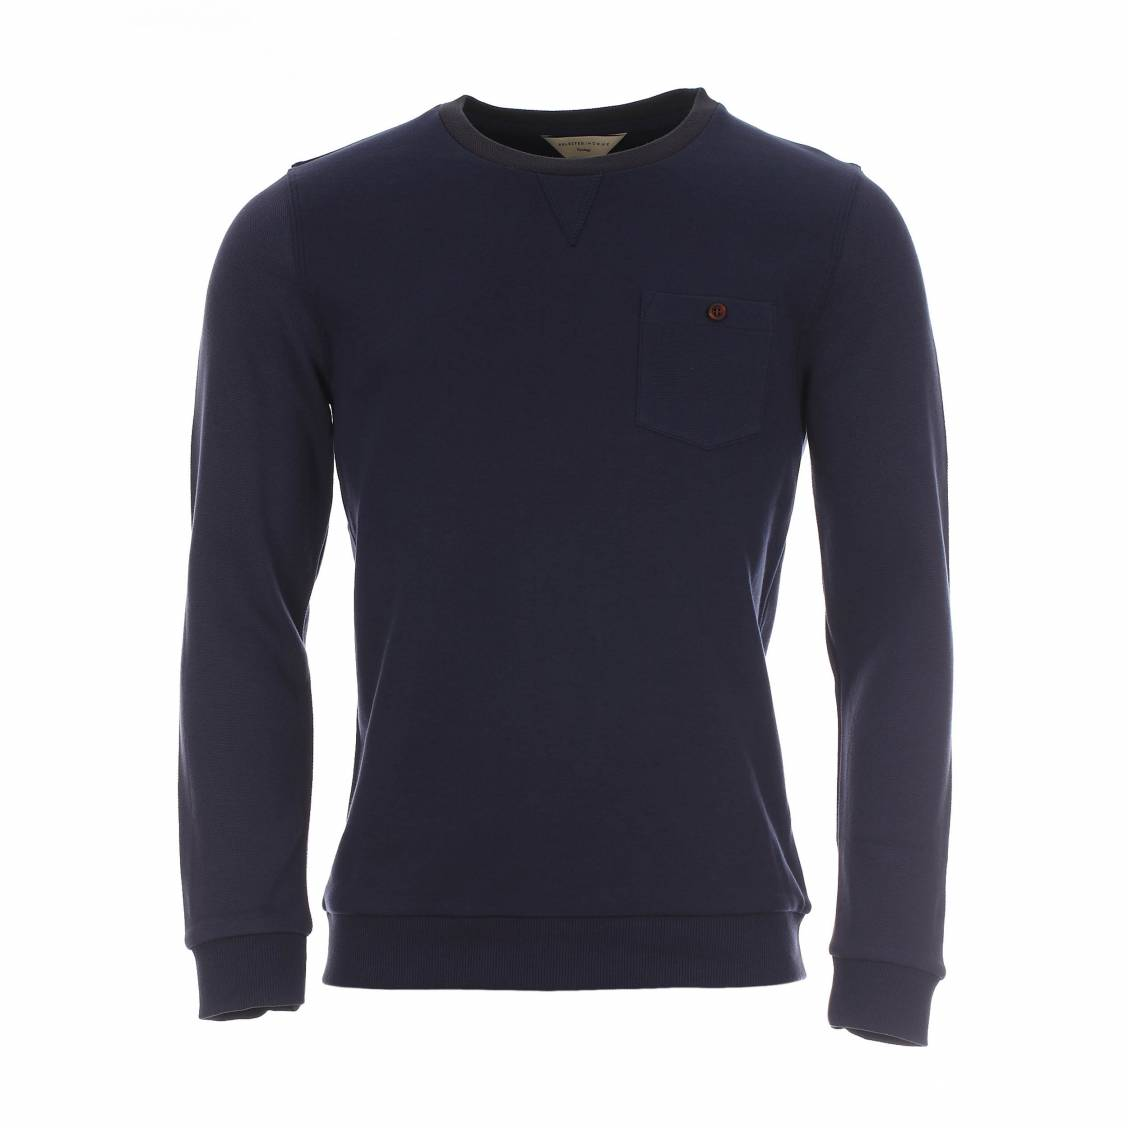 sweat Selected en coton bleu marine